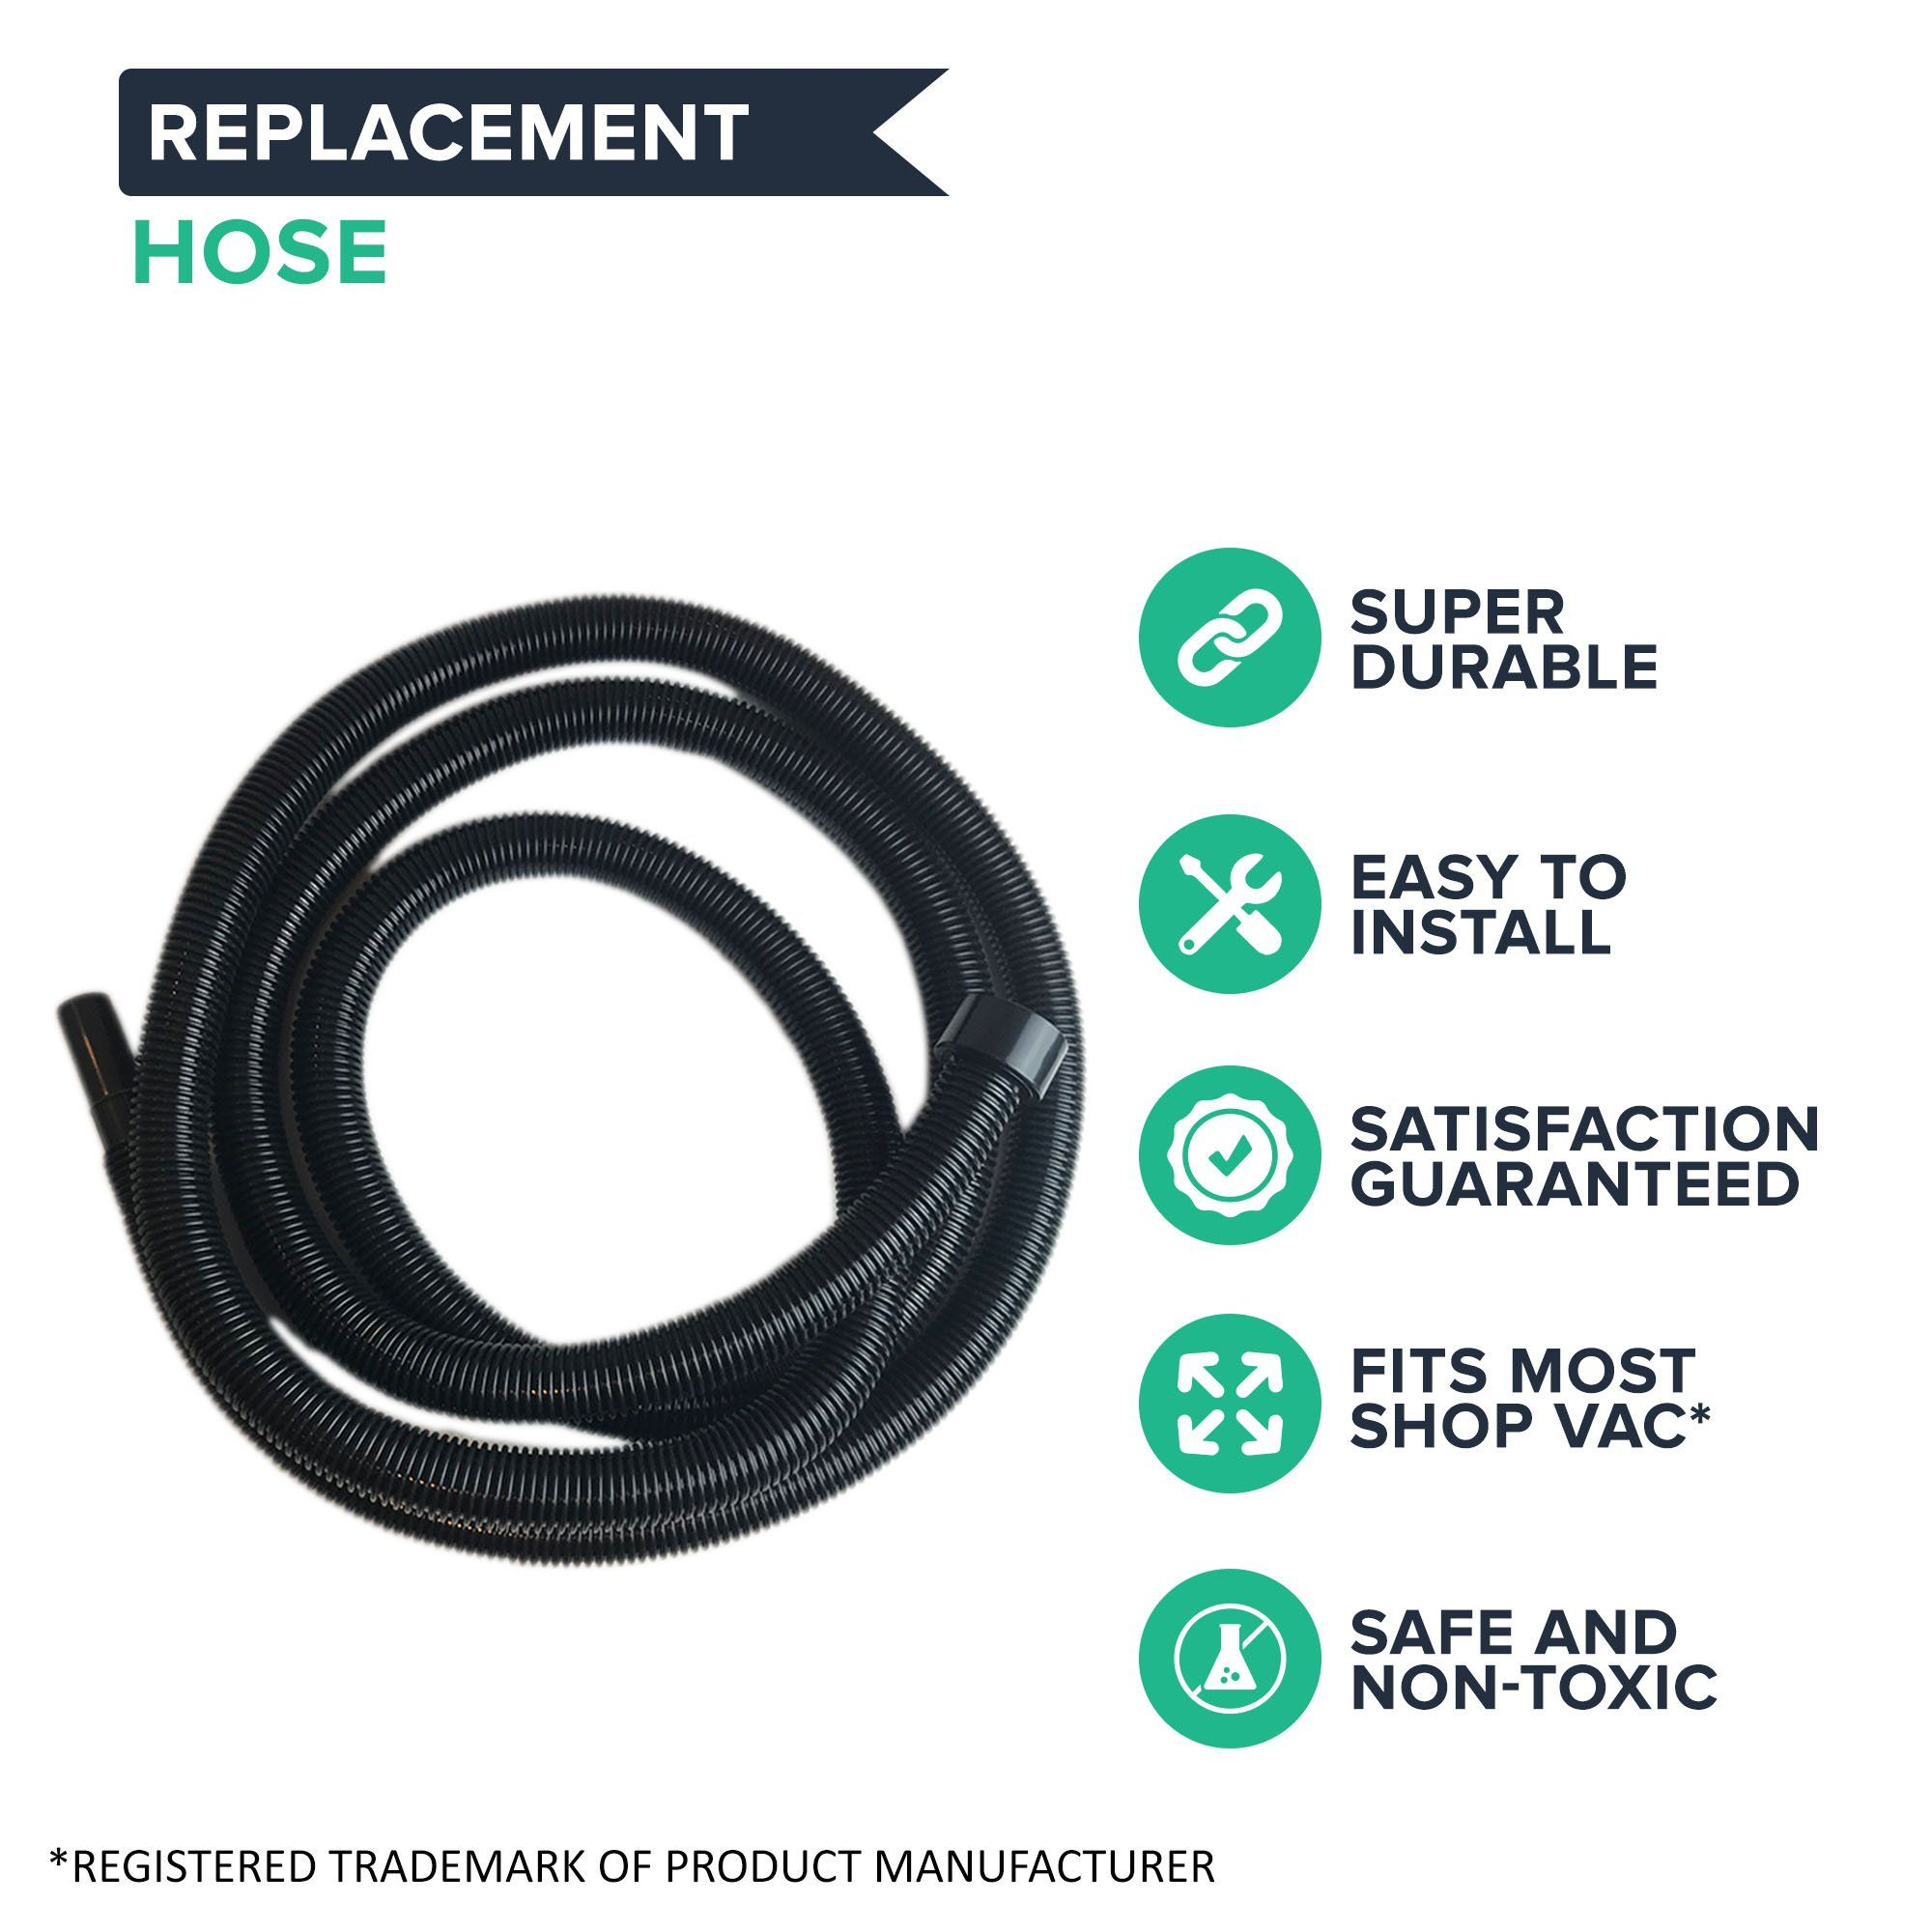 Think Crucial Replacement For Shopvac 20 Foot Hose Stretches To Fits Vacs W 21 4 Inch Openings Want Extra Details Click The Pho In 2020 Hose Shop Vac Replacement